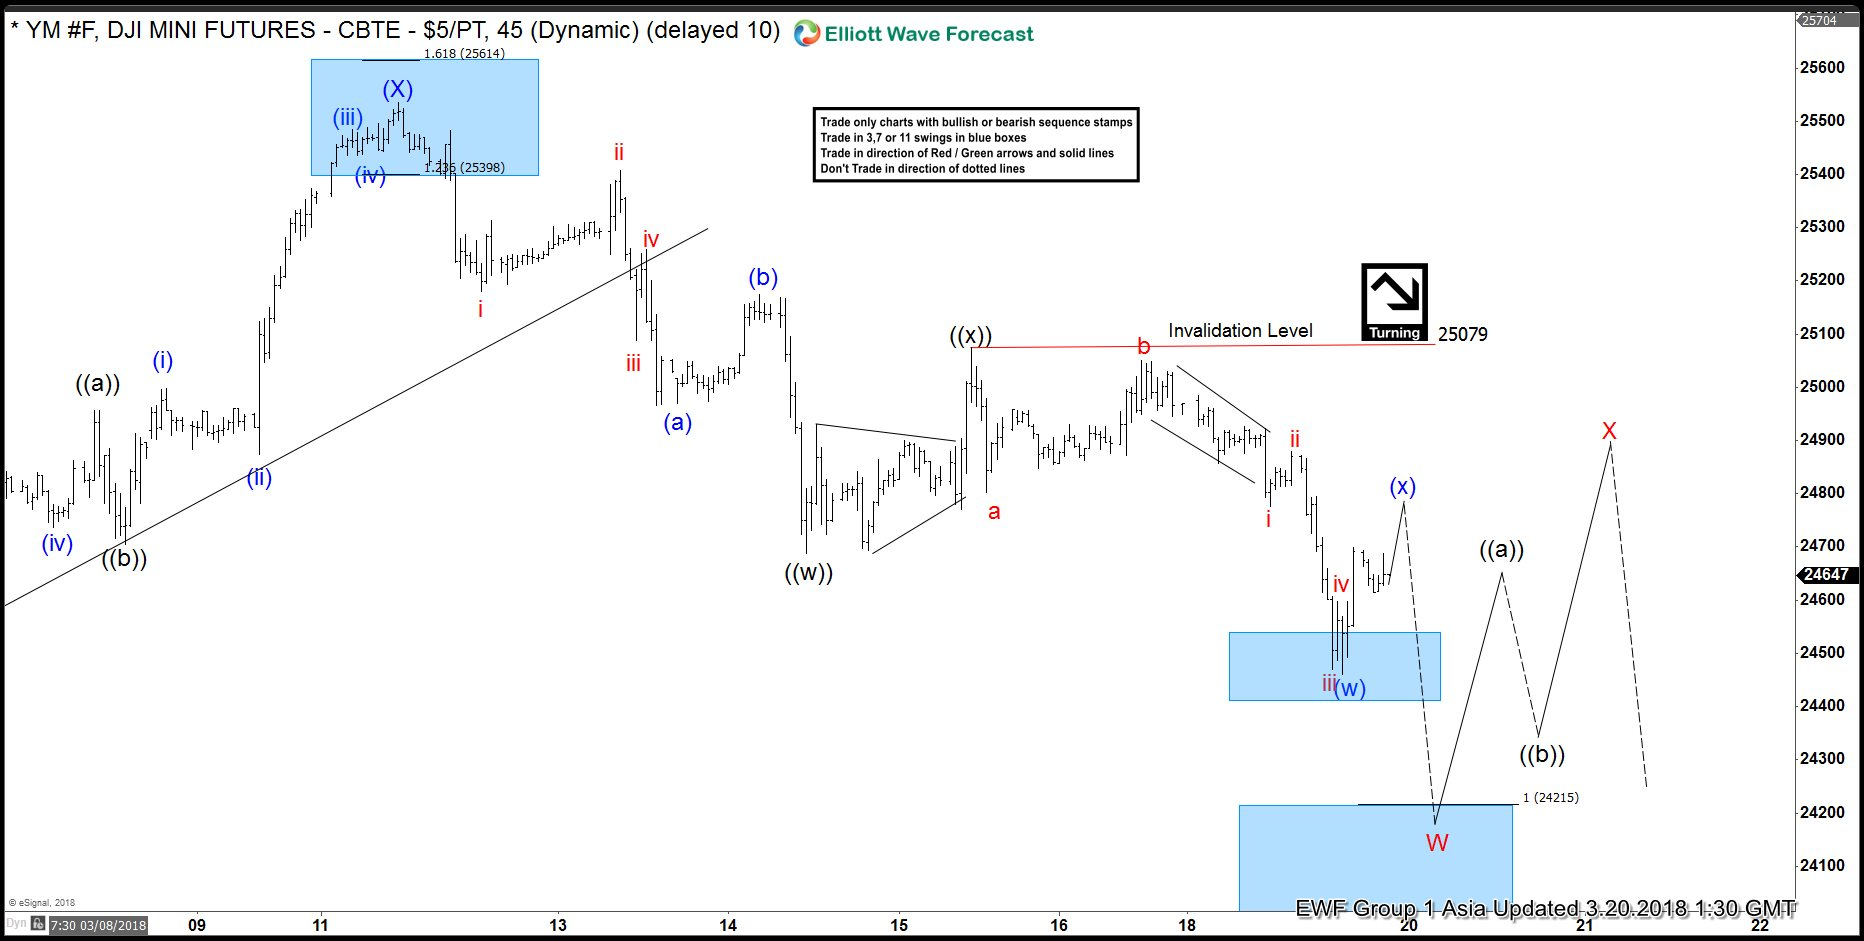 Dow Jones (YM_F) Elliott Wave Analysis: Further Weaknesses Expected to 24215